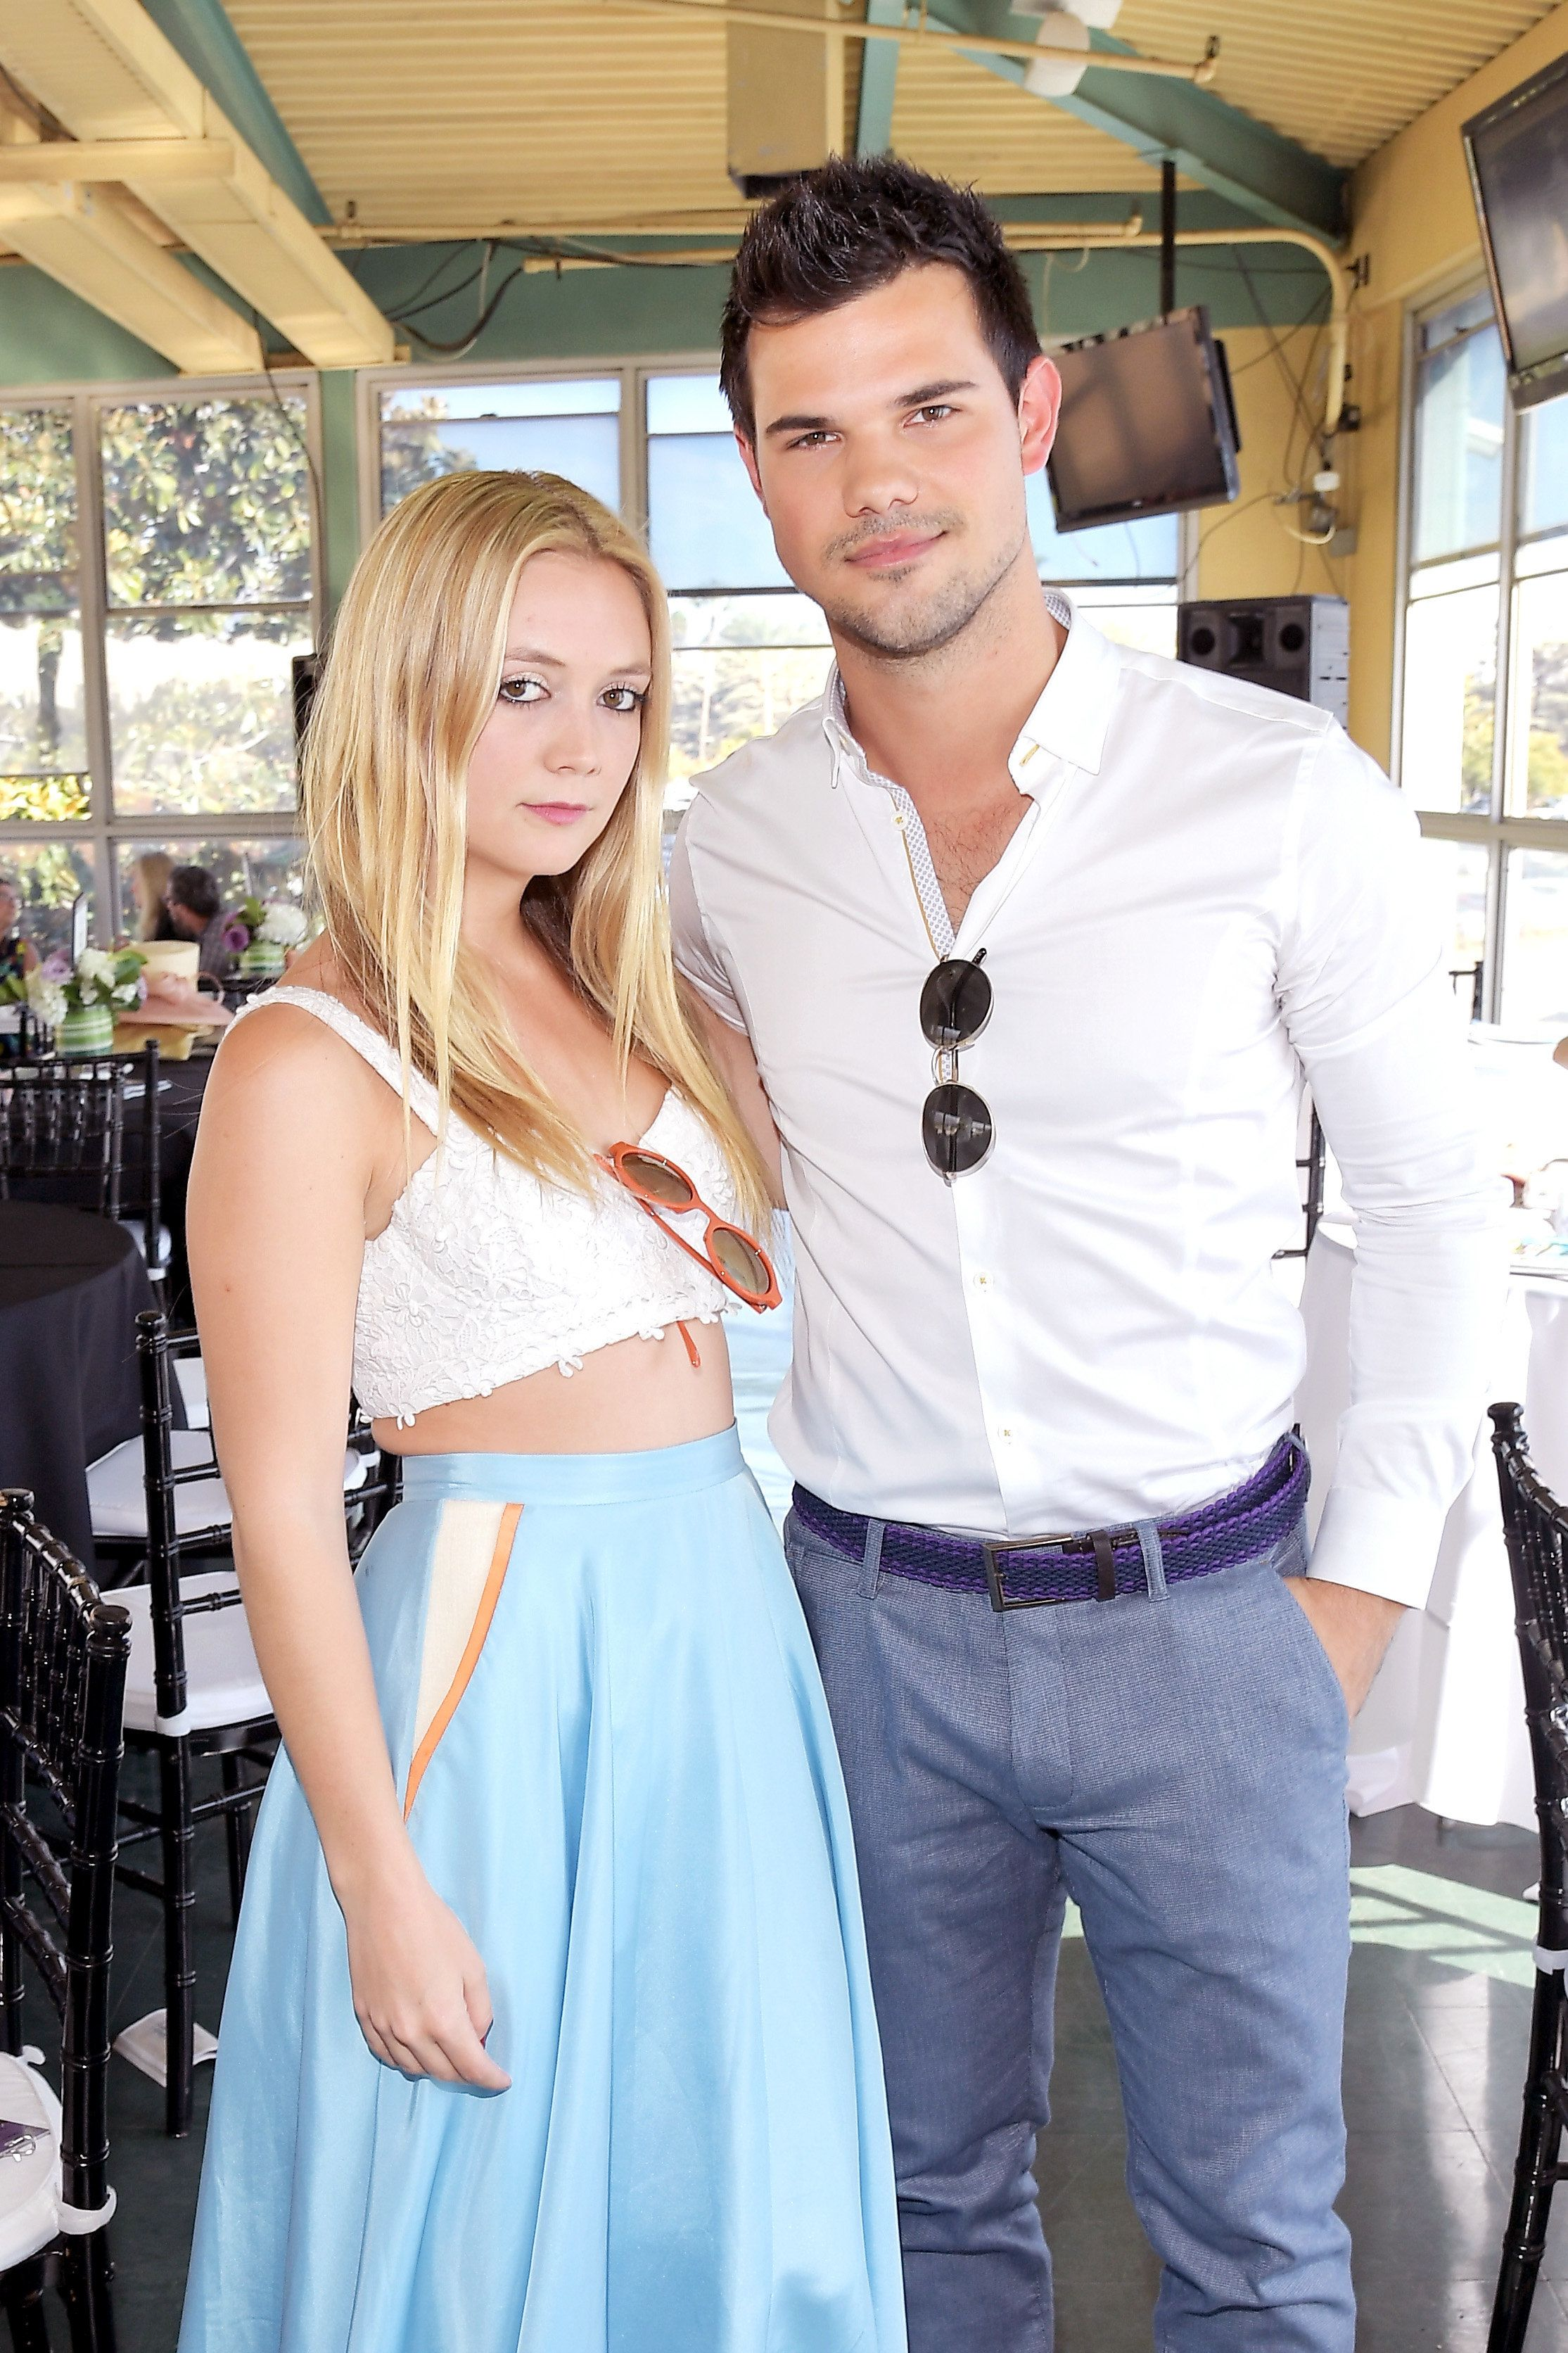 Billie Lourd and Taylor Lautner, who starred together on